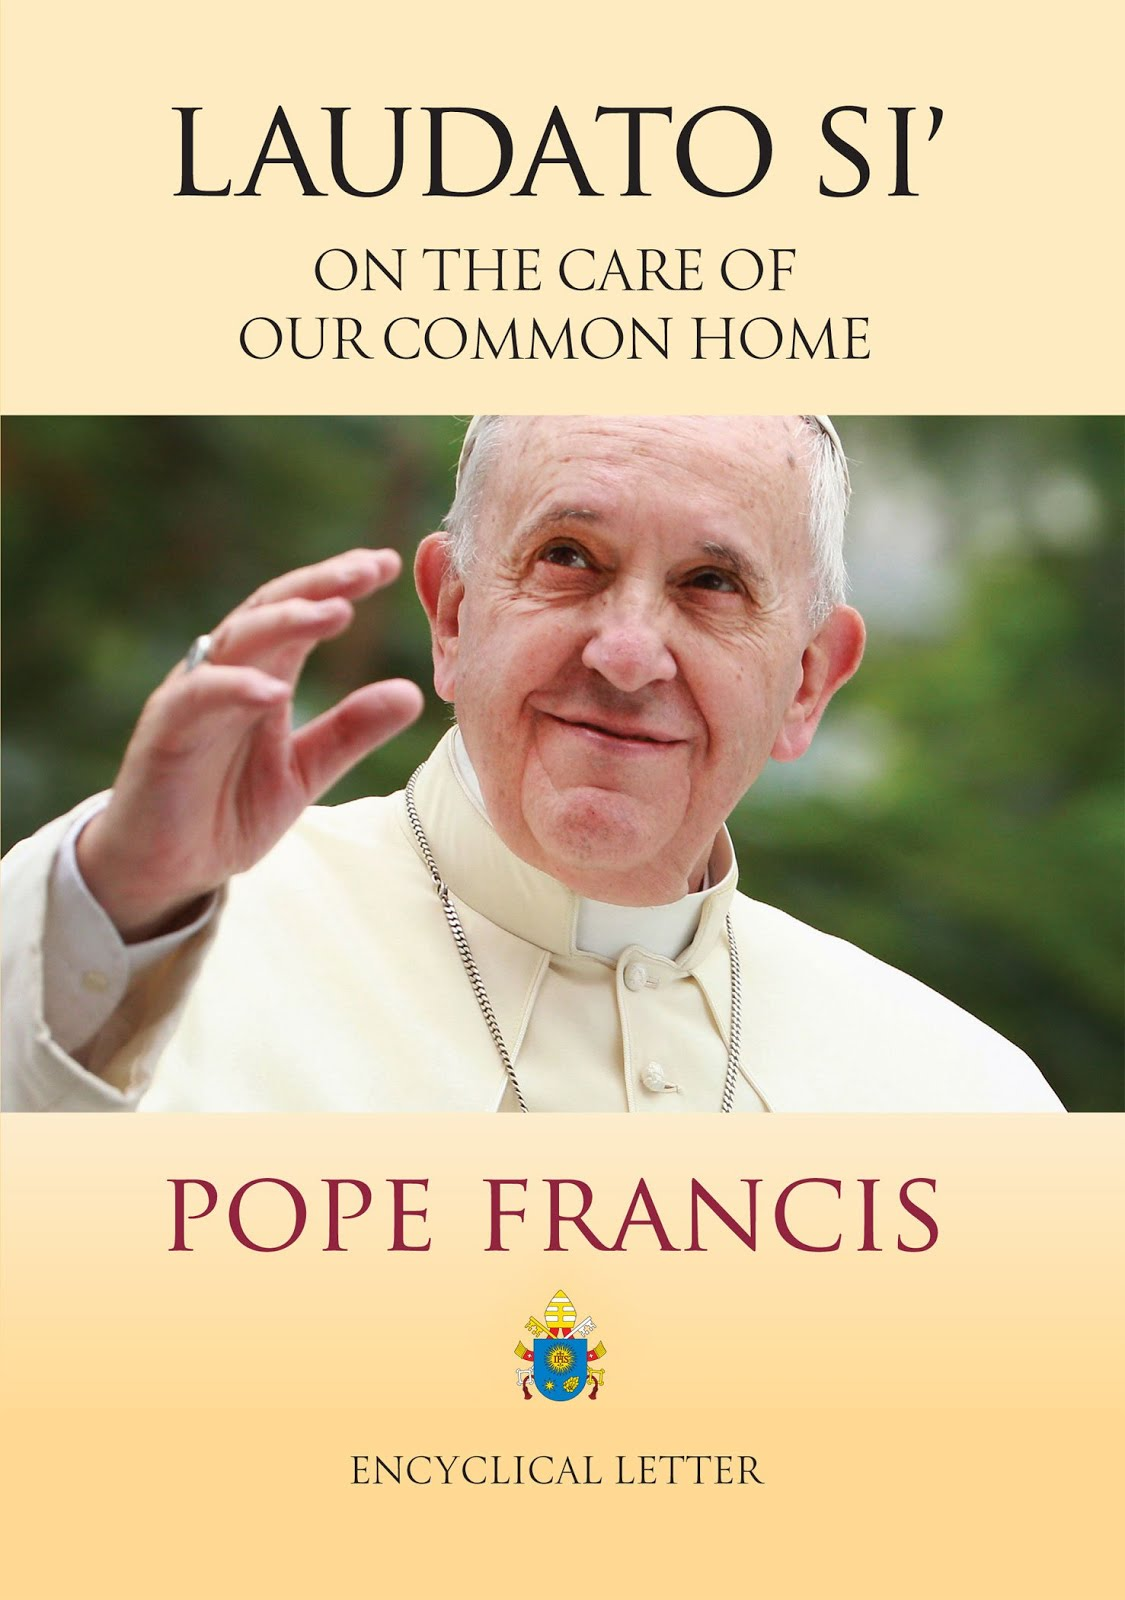 LAUDATO SÌ  -  Pope Francis' Encyclical Letter on the CARE OF OUR COMMON HOME